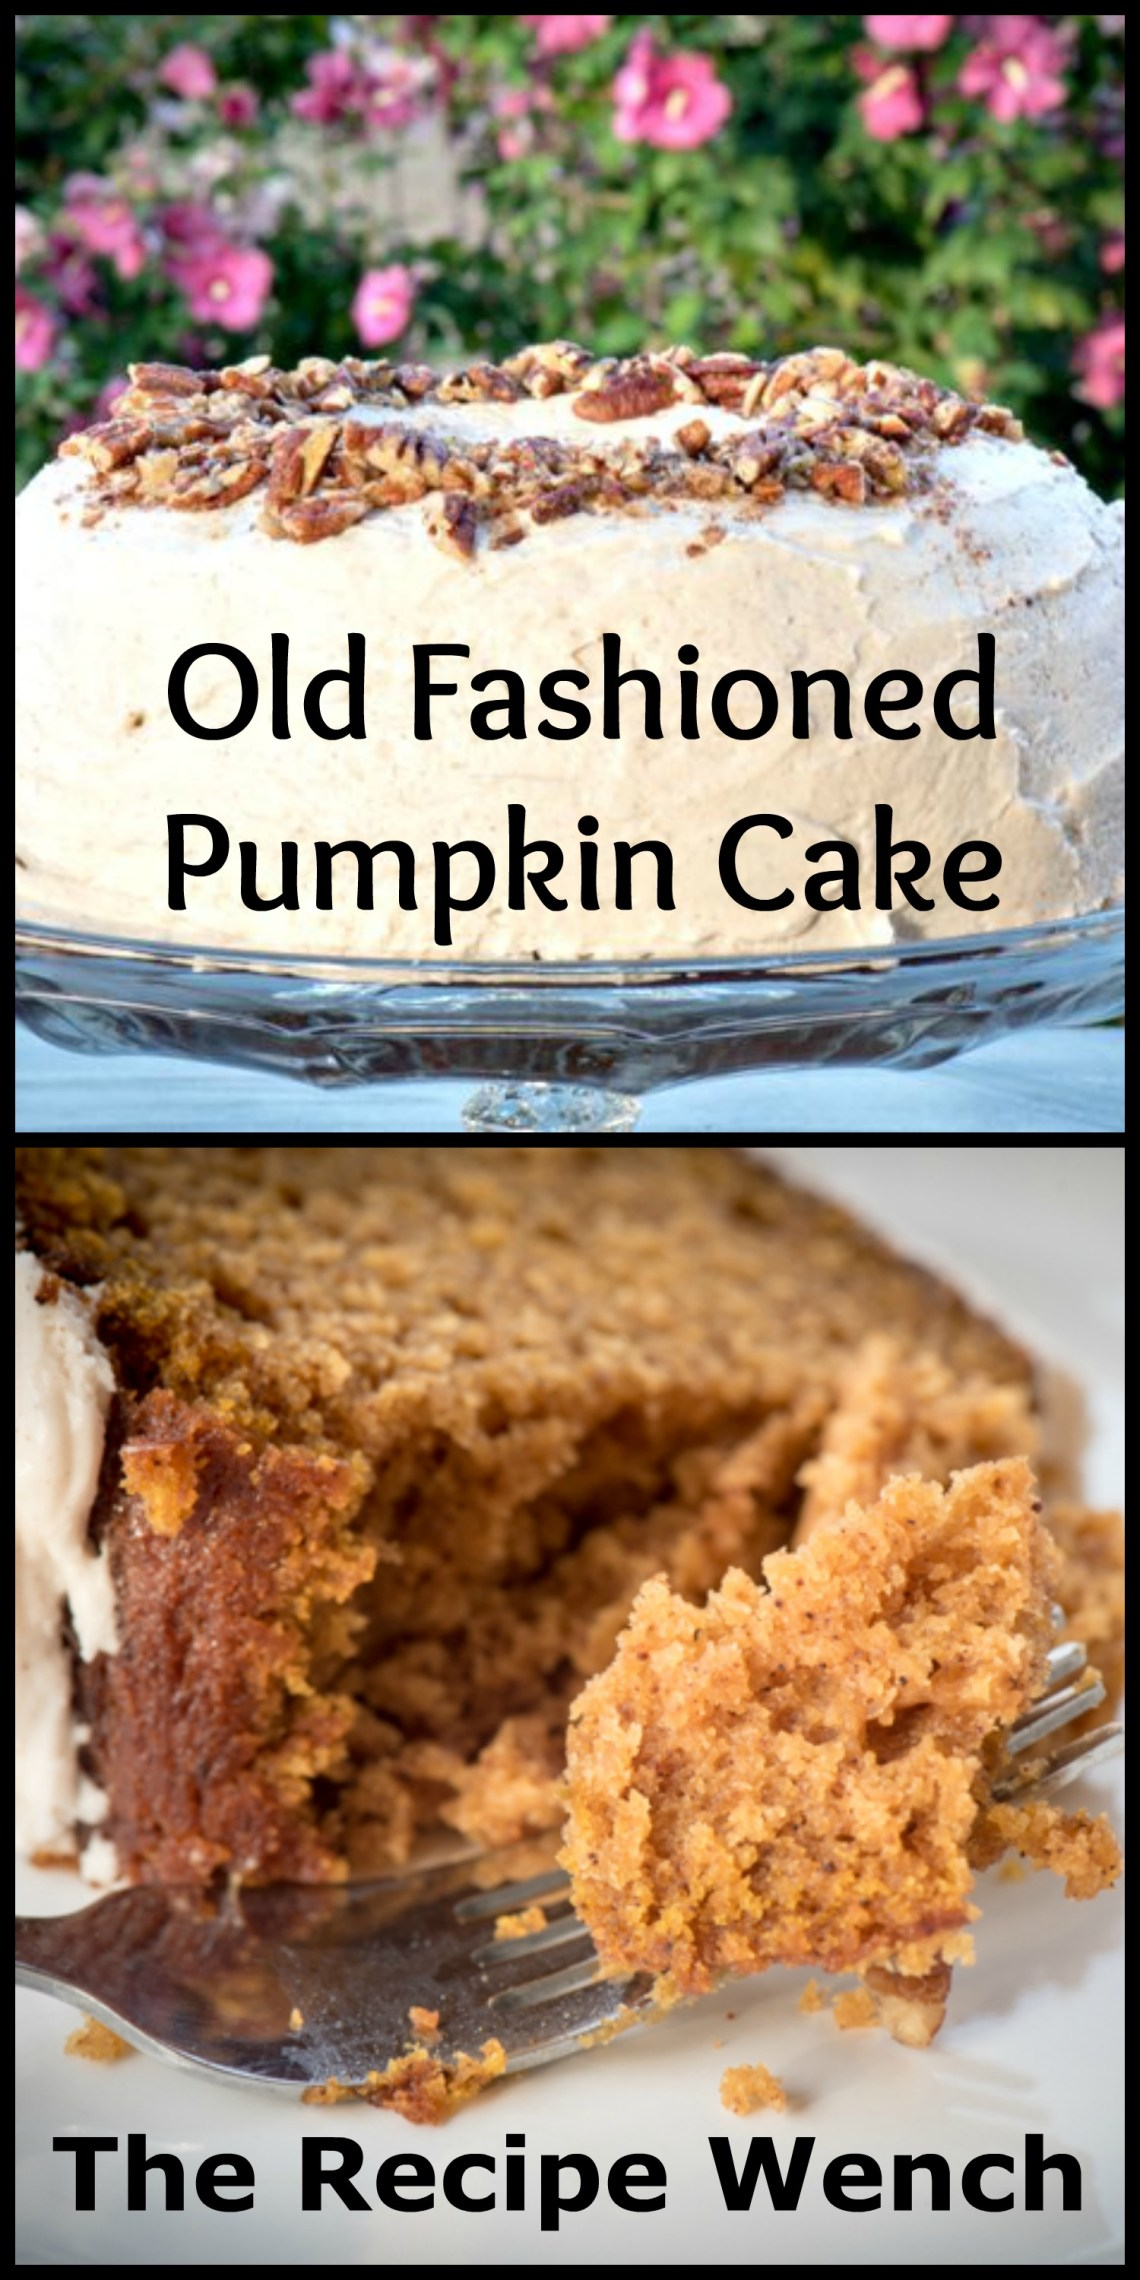 Buttermilk gives this pumpkin cake a great texture. Baked in a bundt pan, it's easy and beautiful! | The Recipe Wench